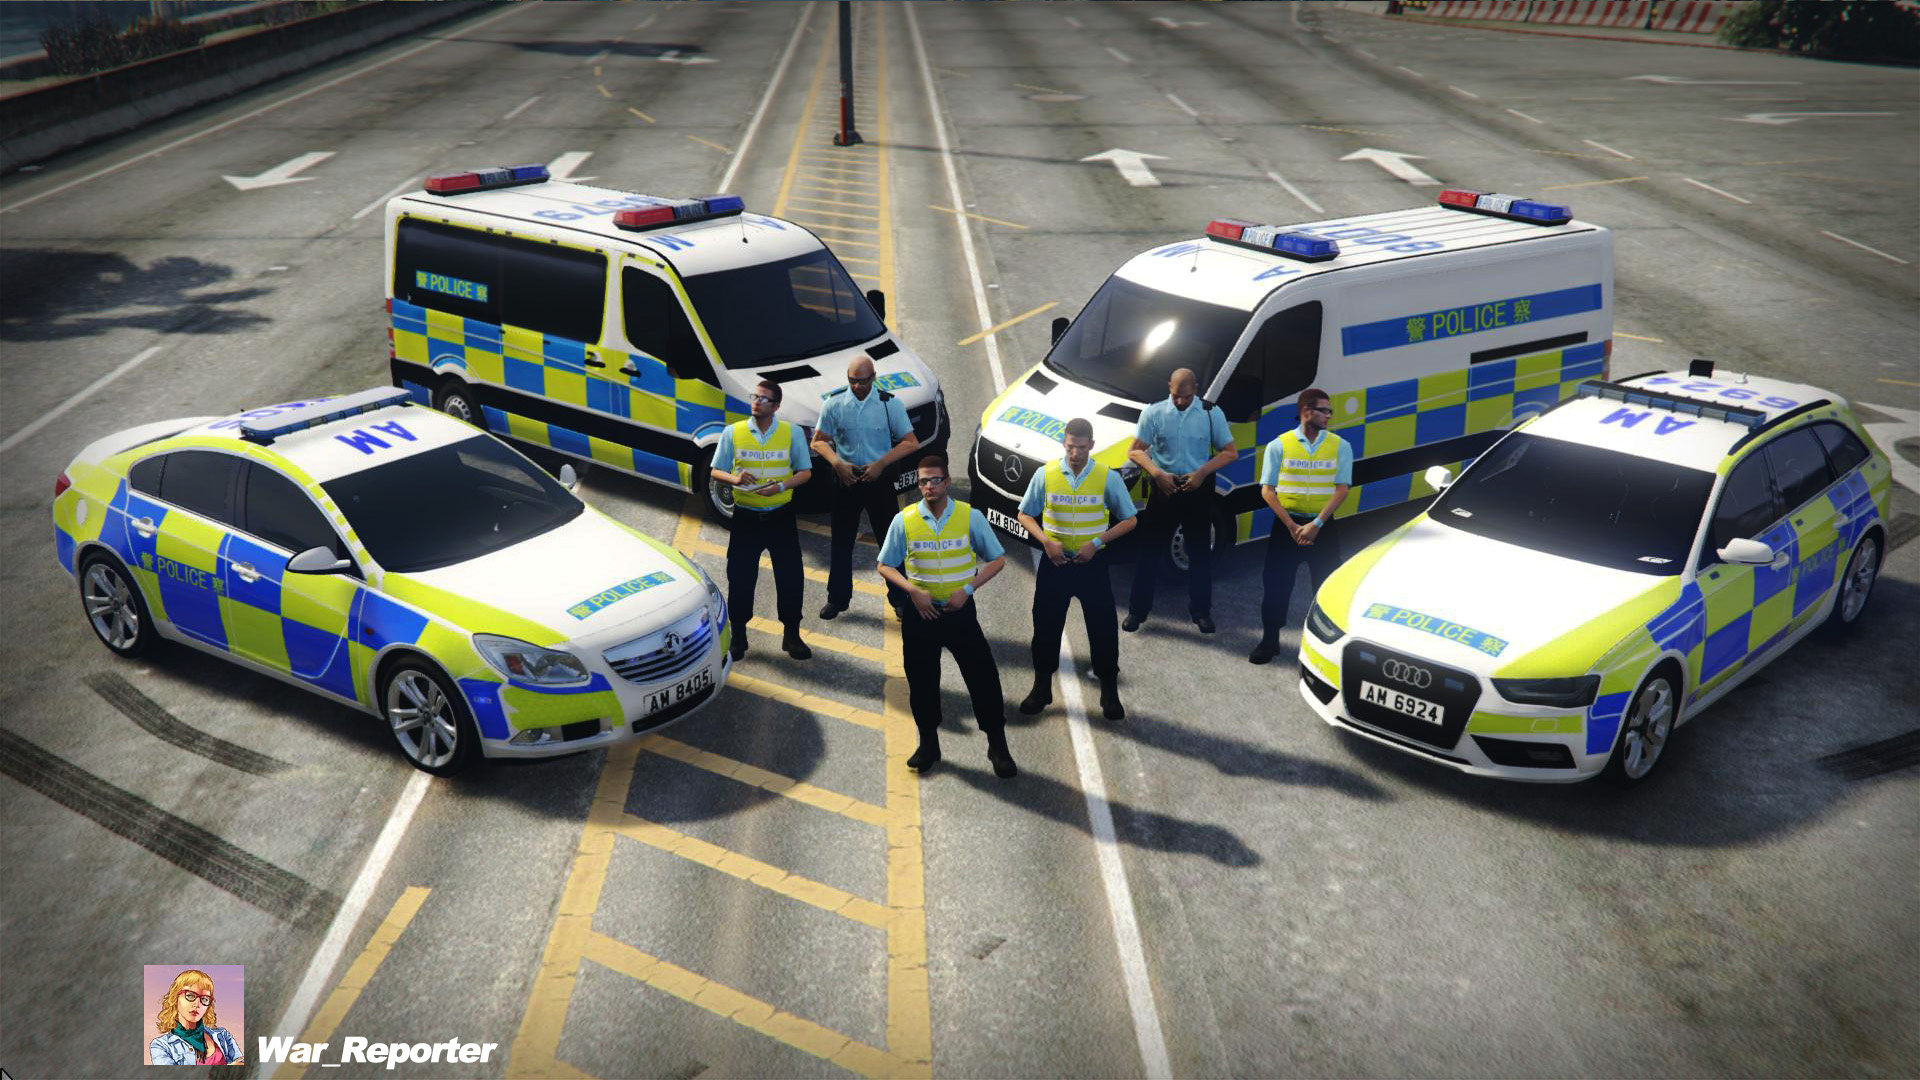 gta san pc cheats with Mercedes Sprinter Hong Kong Police Skin on Tubarao likewise Screenshots together with 45584 Enbseries For Low Pc together with 80098 Gta V Re Sized V55 Stable besides Mafia 3 Vargas Paintings Locations Guide.